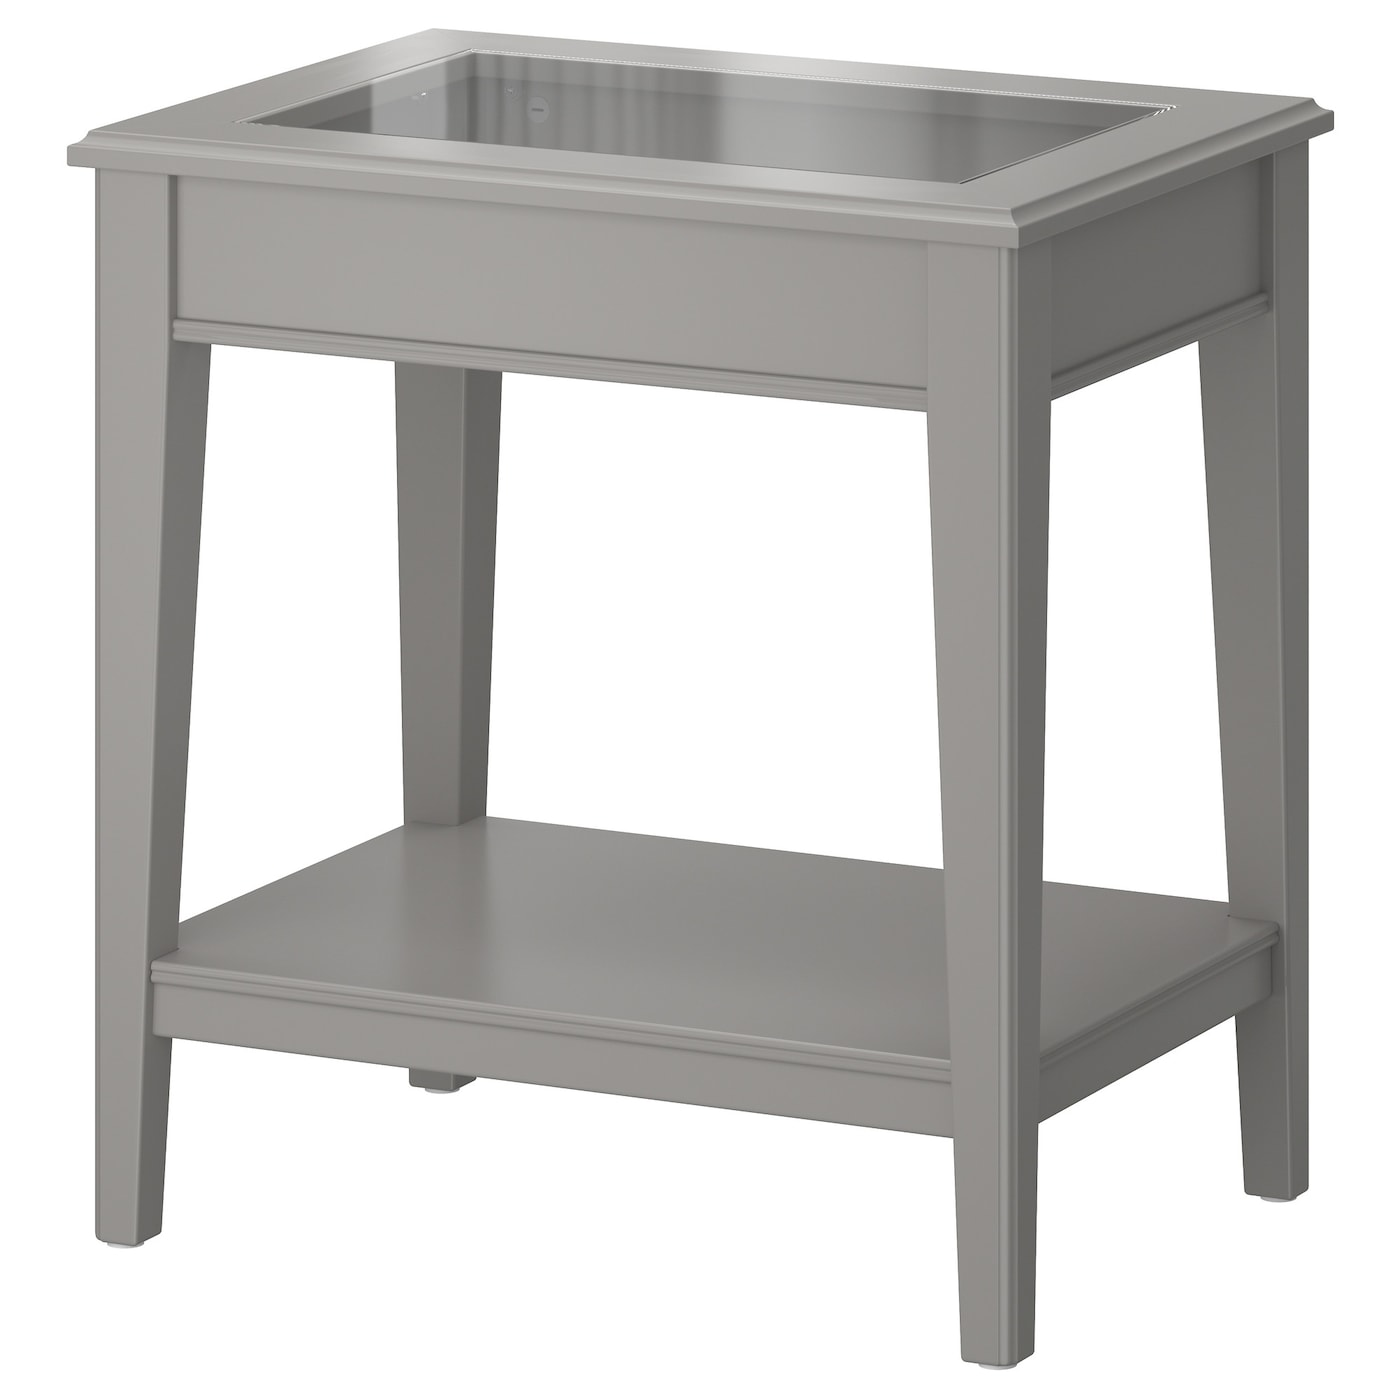 Good IKEA LIATORP Side Table